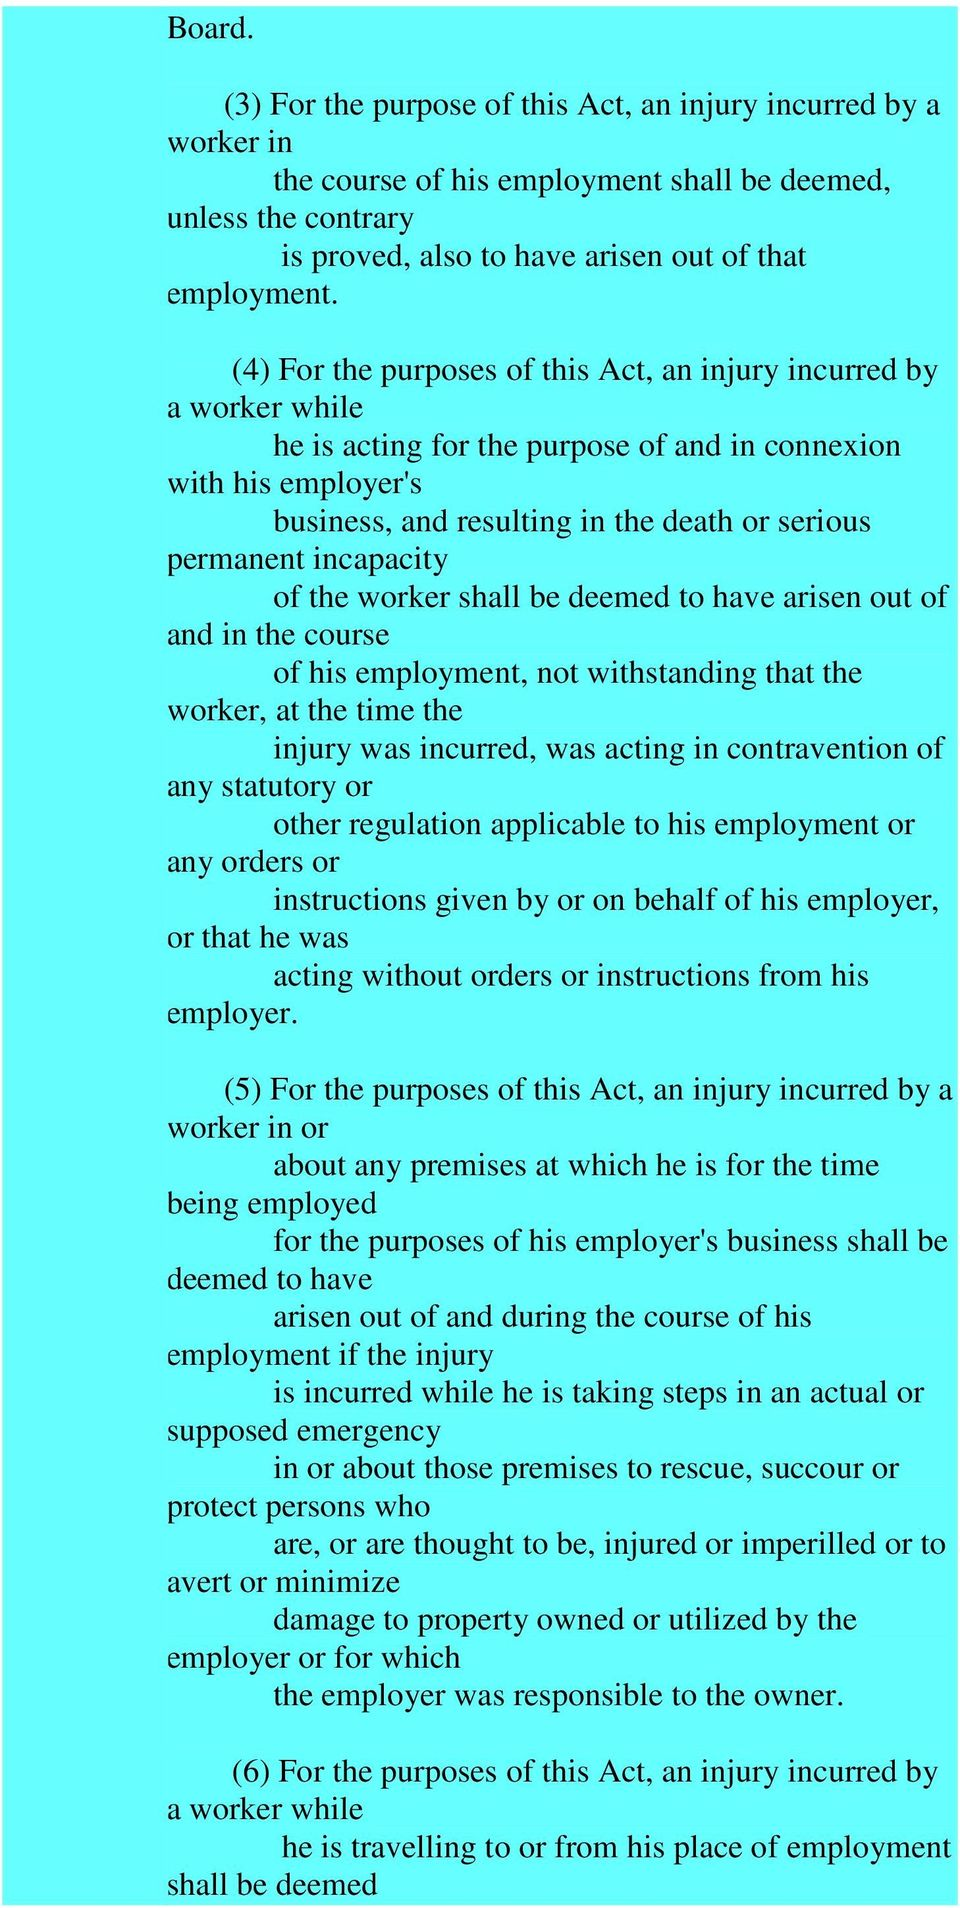 incapacity of the worker shall be deemed to have arisen out of and in the course of his employment, not withstanding that the worker, at the time the injury was incurred, was acting in contravention